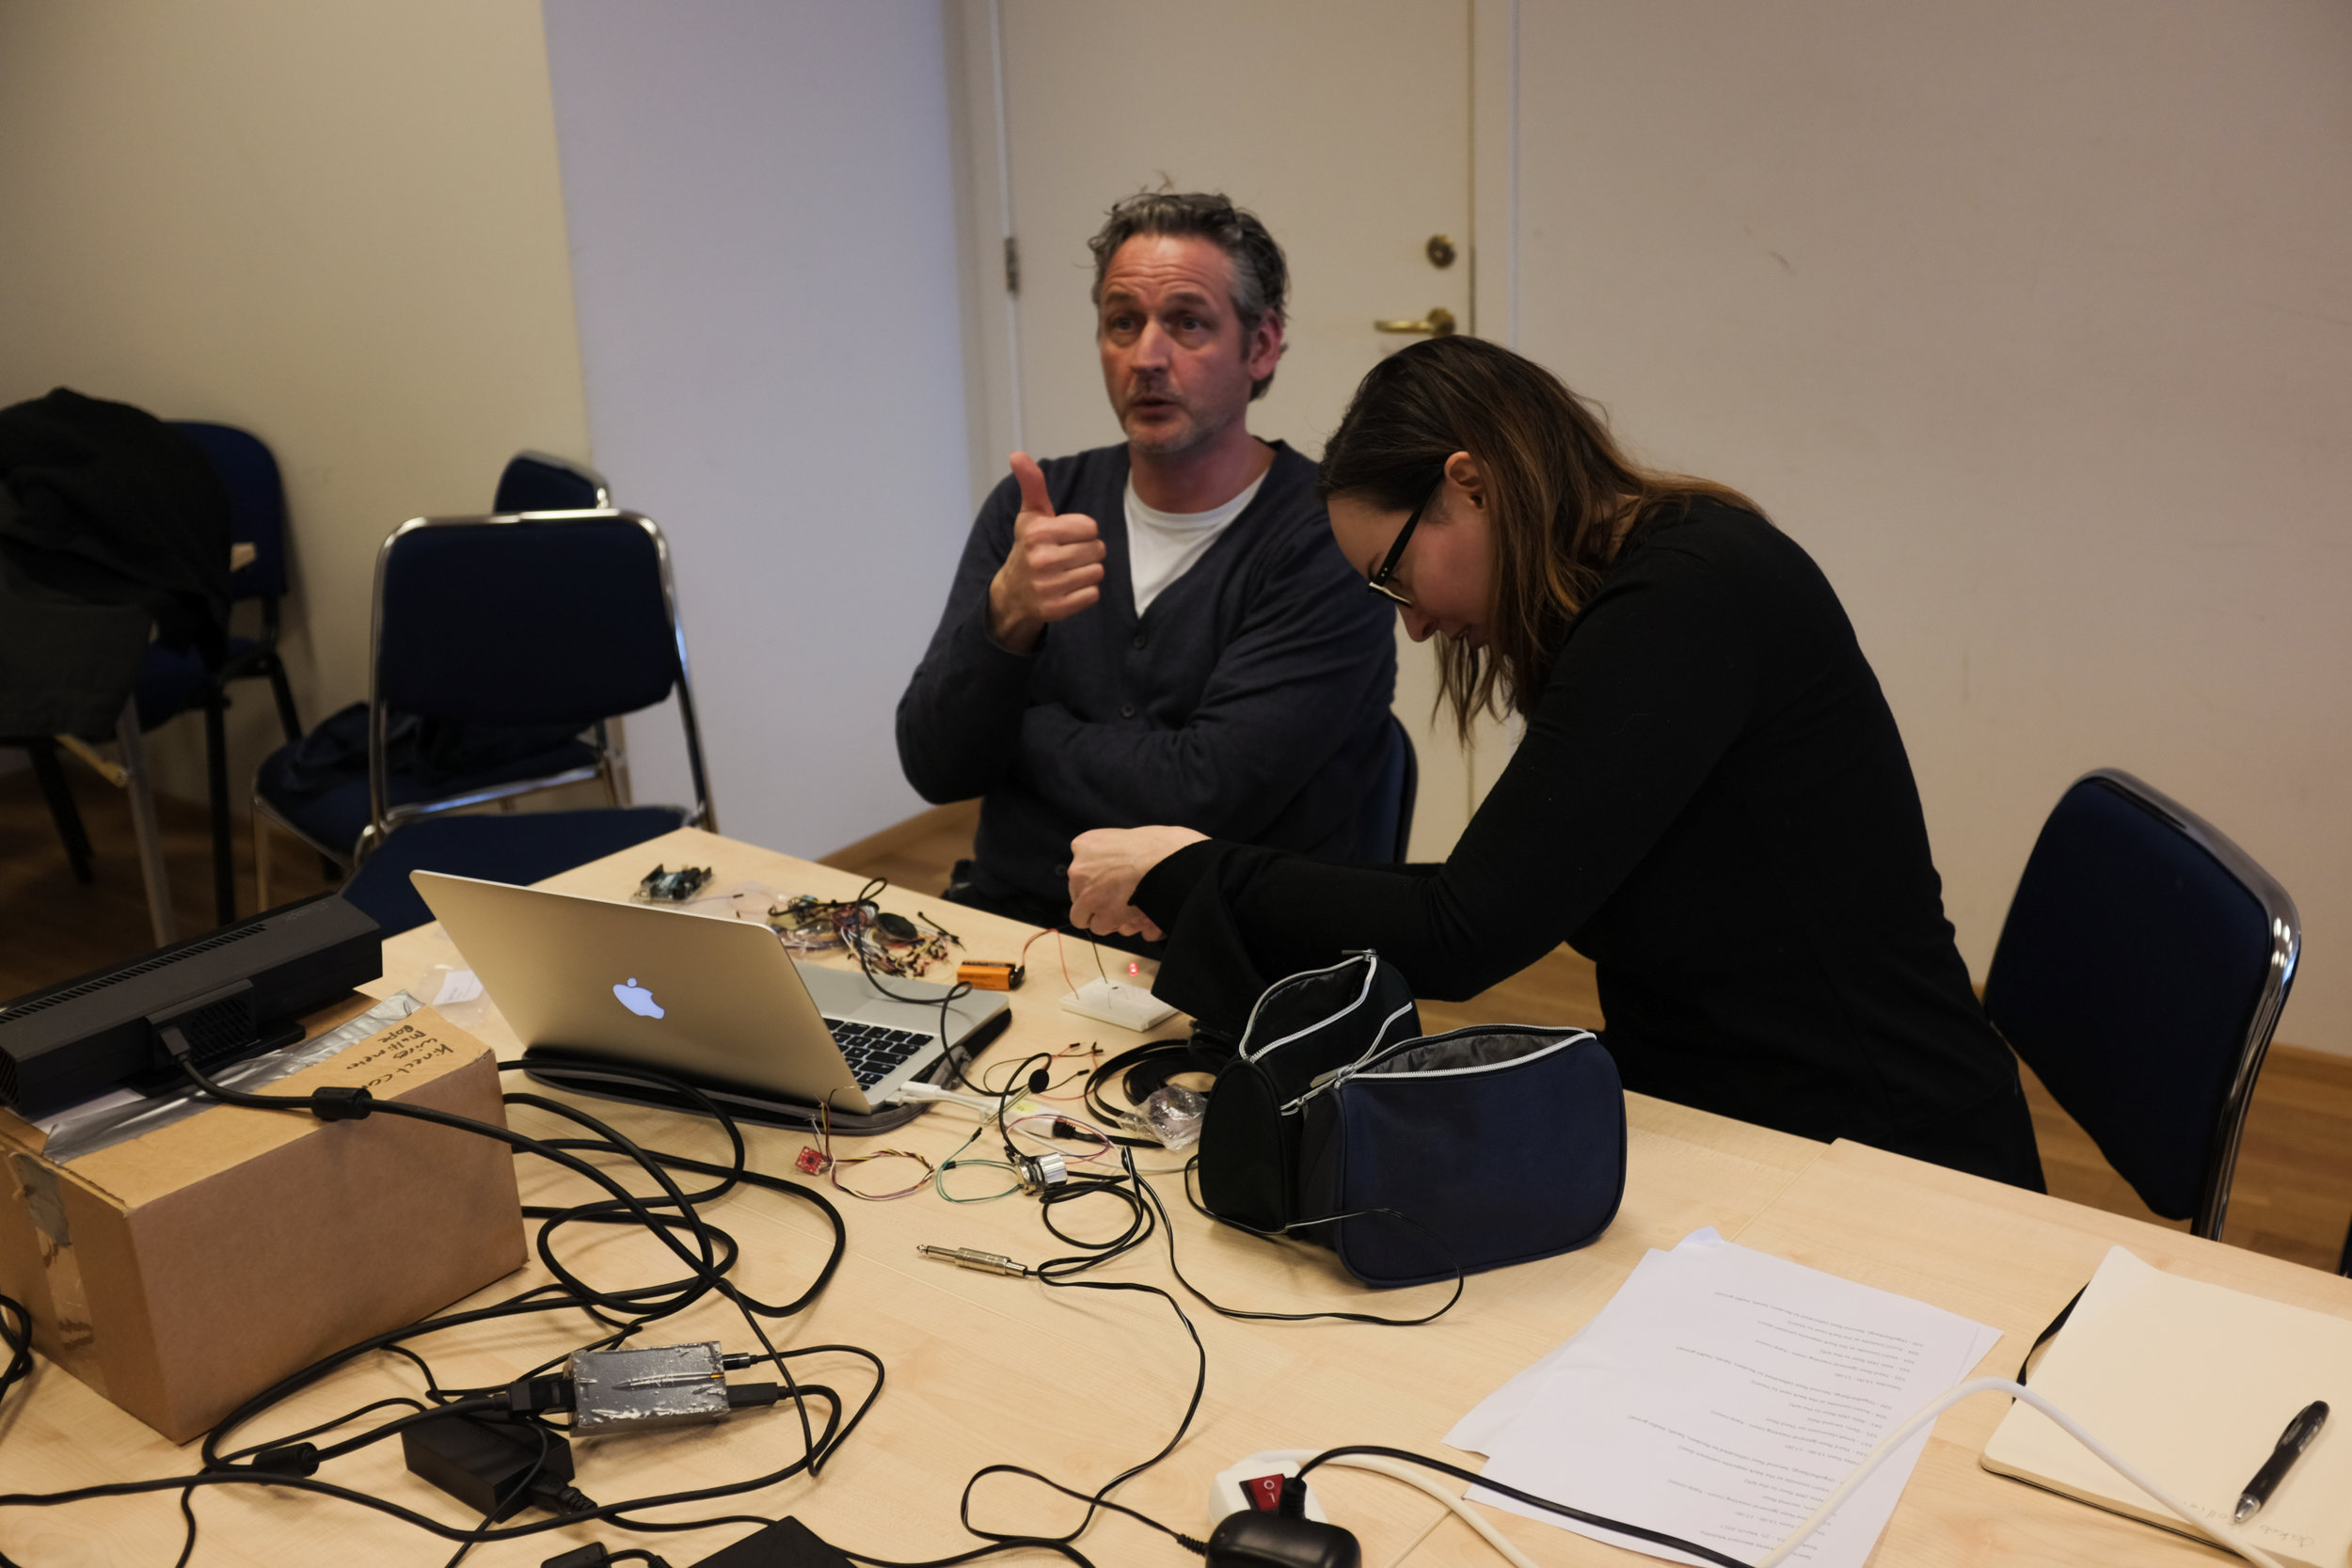 The makeshift NAIP 'tech lab' with our mentor/expert Lex van den Broek (Royal Conservatoire The Hague).